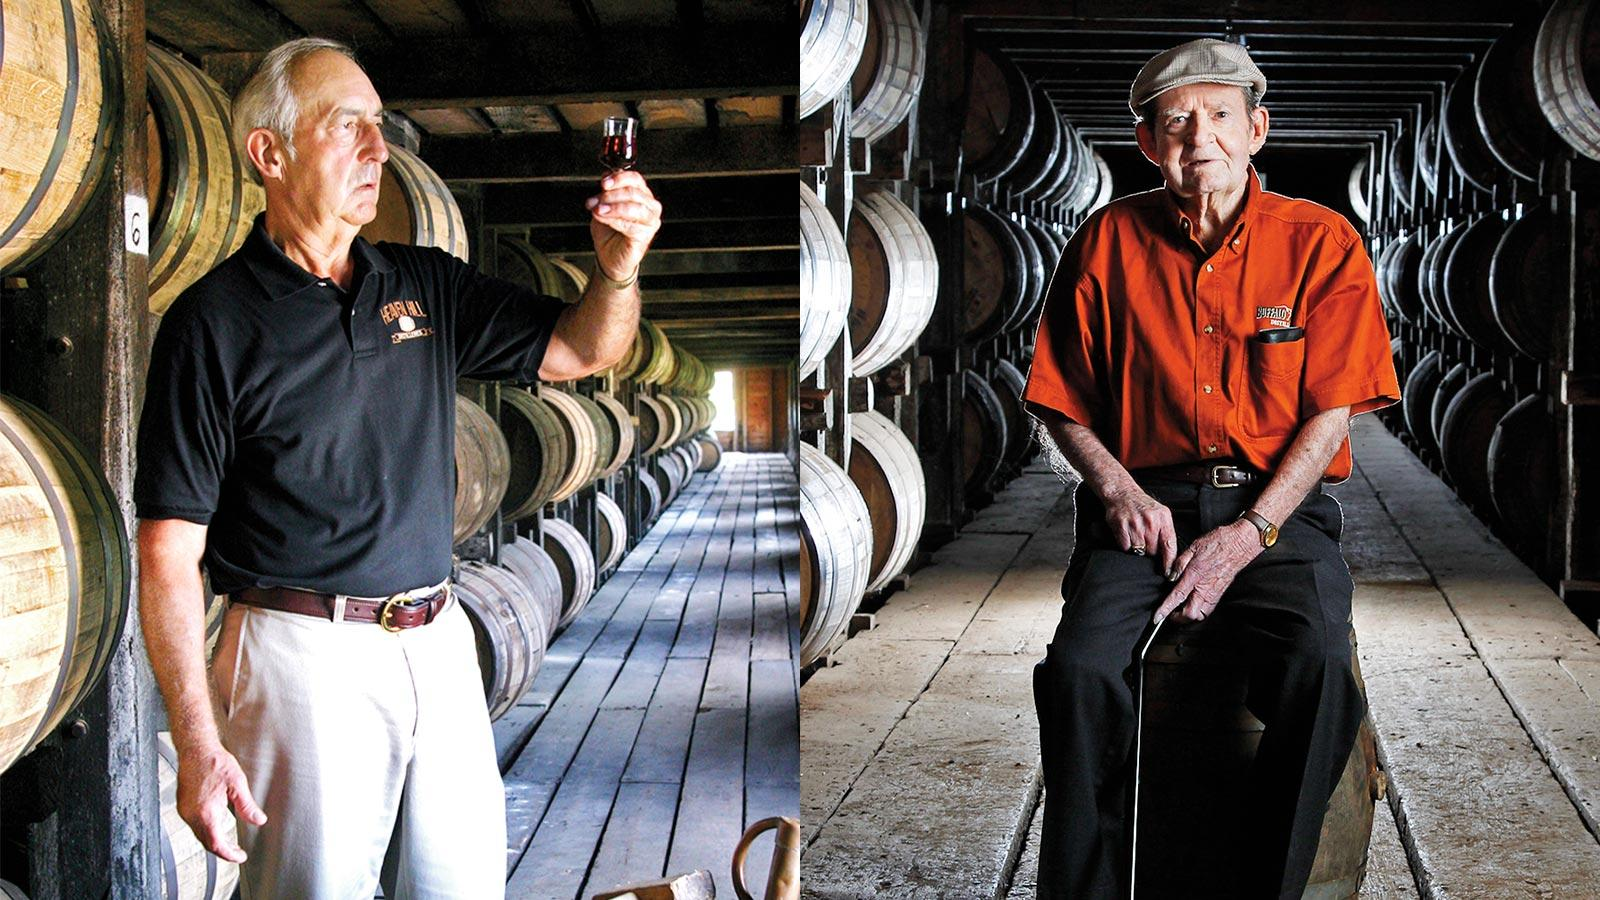 Departed legends Parker Beam (left) and Elmer T. Lee (right) saw the ups and downs of Bourbon.